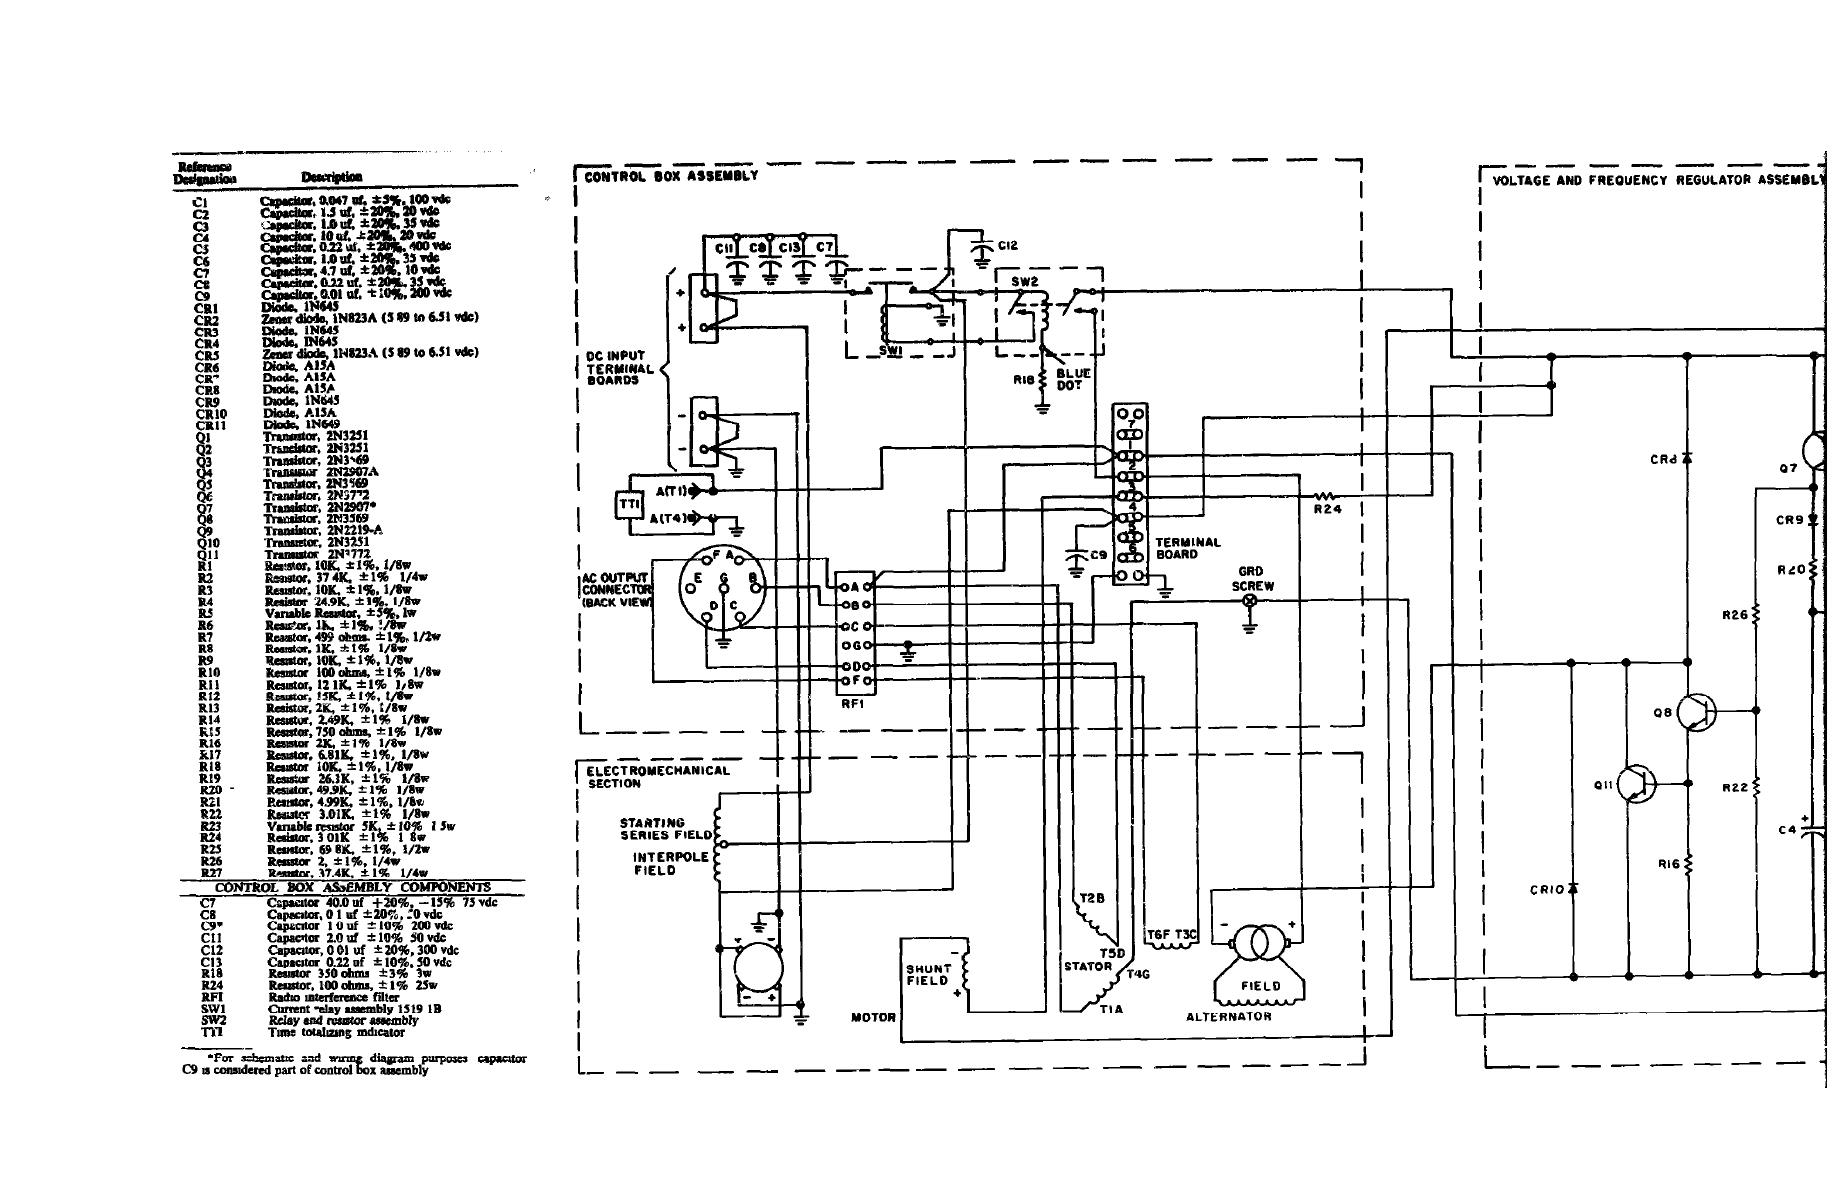 TM-11-6125-256-340098im Leisure Bay Wiring Diagram on leisure bay control panel, leisure bay repair manual, leisure bay parts,